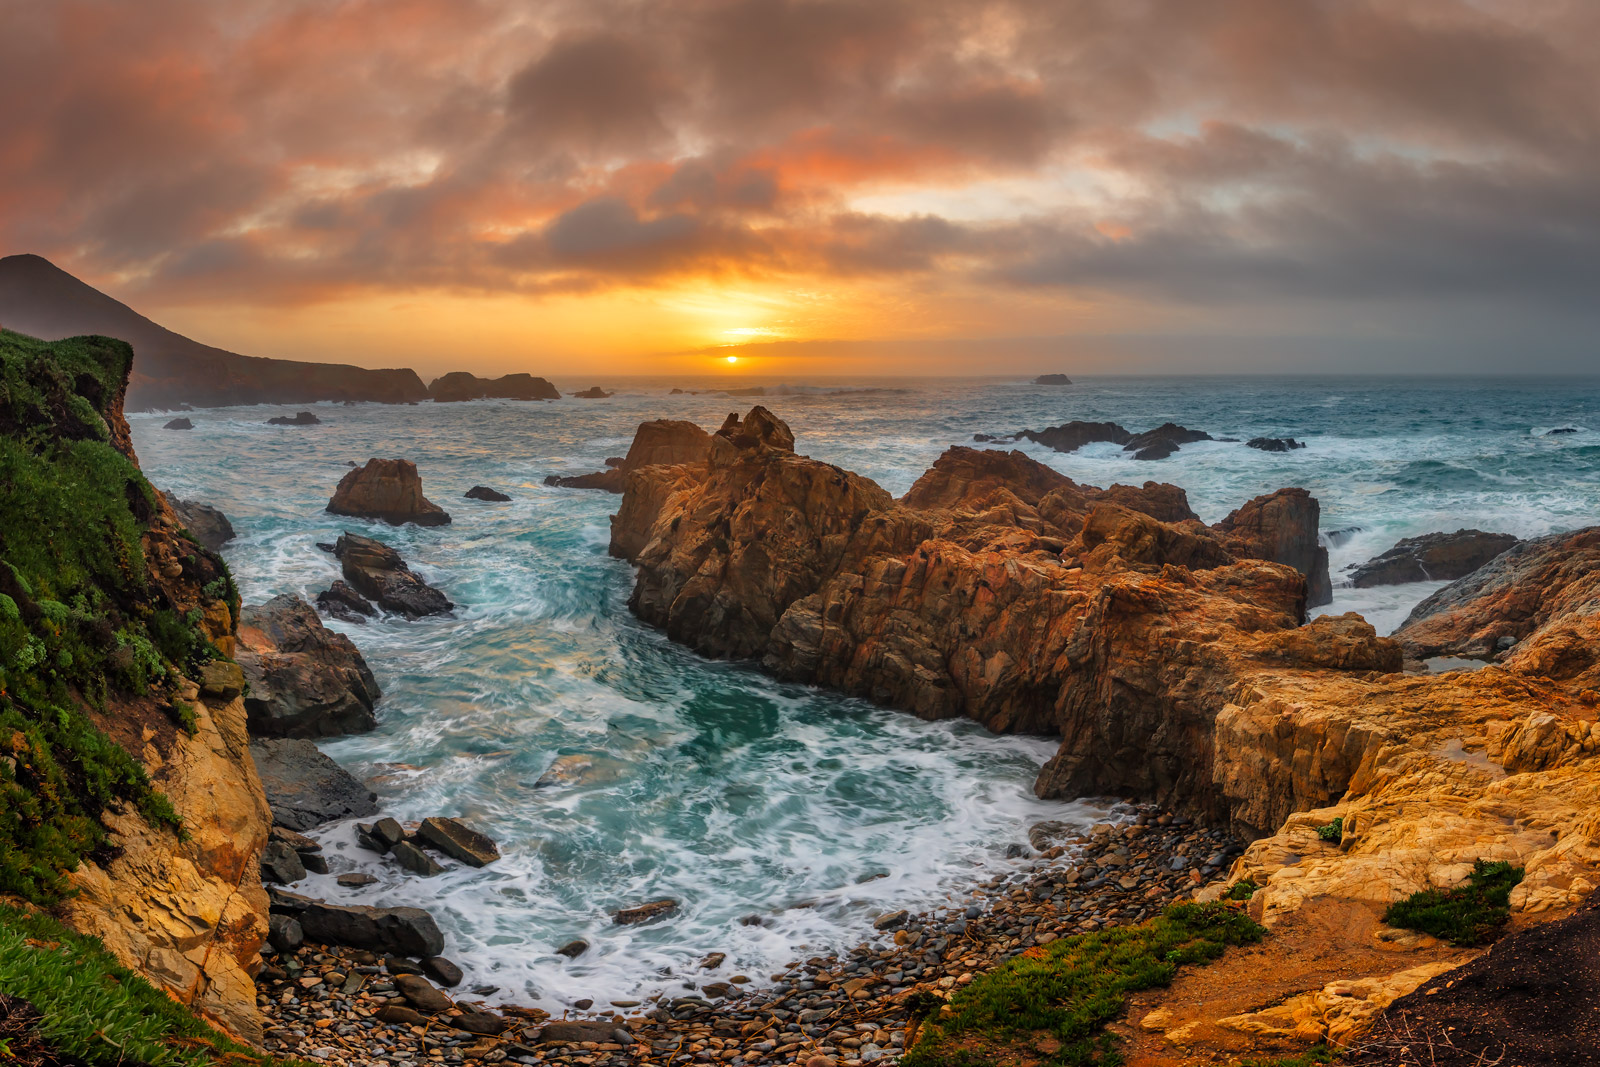 California, Big Sur, Sunset, Garrapata, Soberano